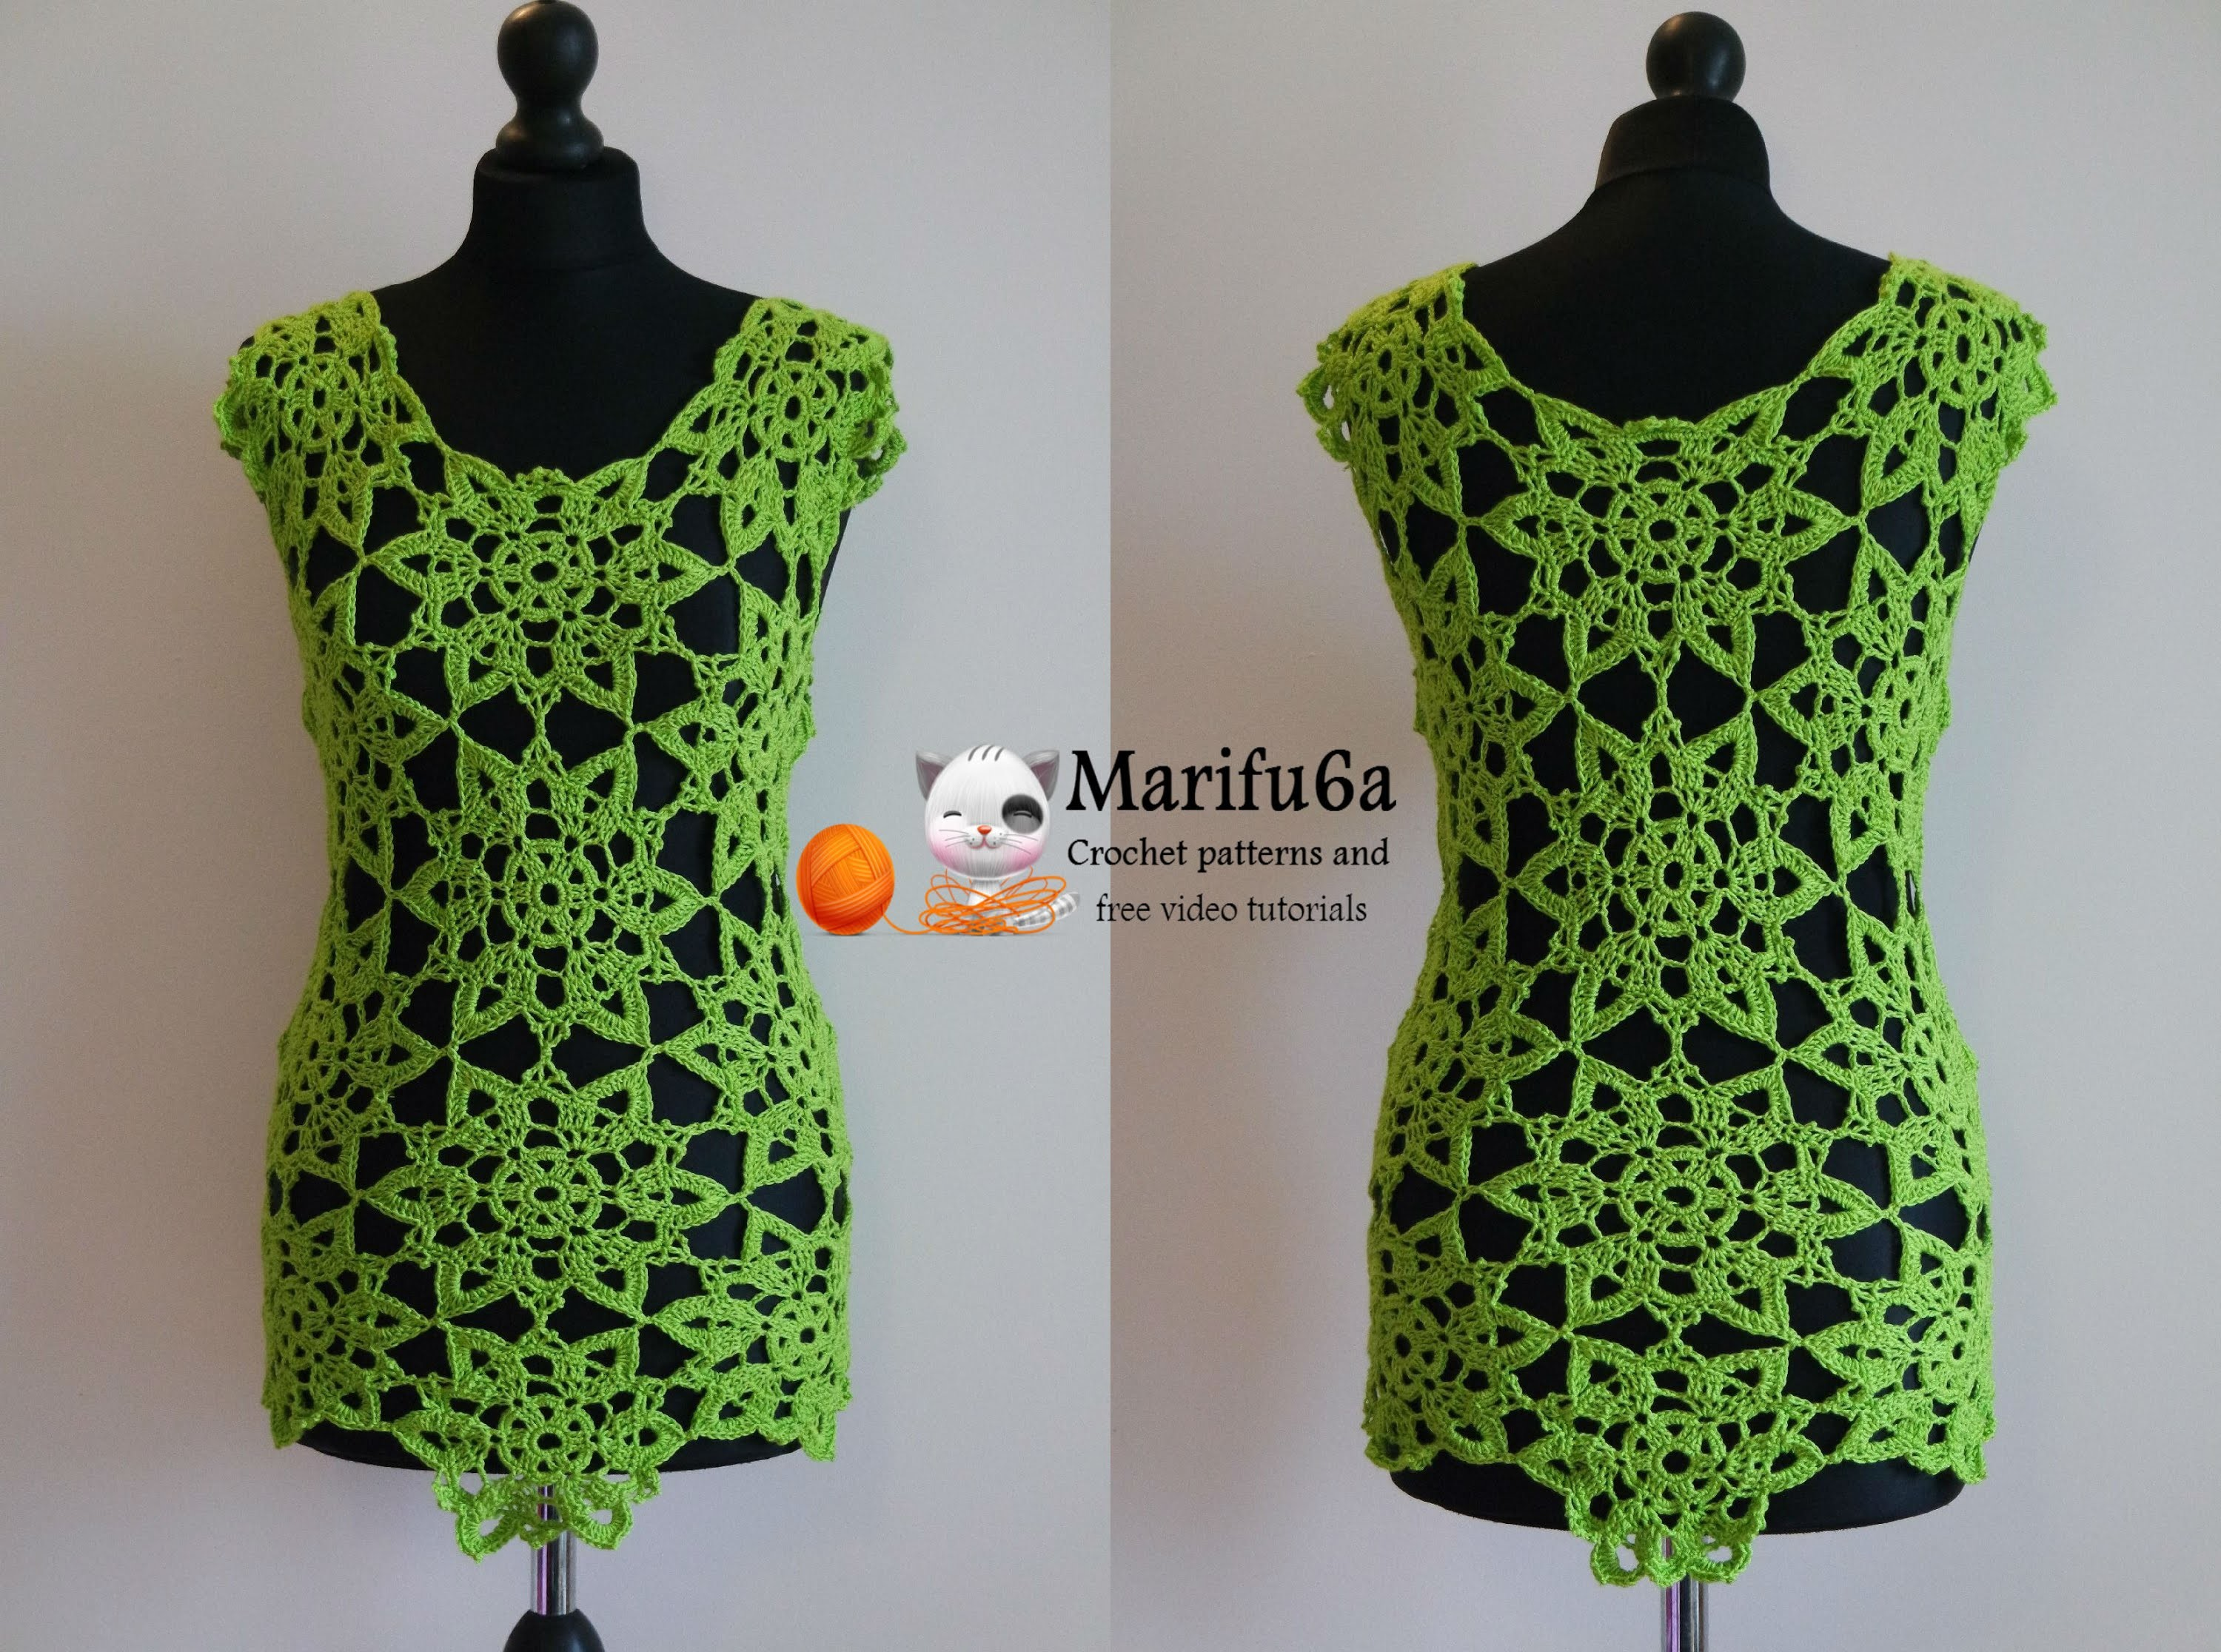 How to crochet lime top tunic with motifs free tutorial pattern by marifu6a